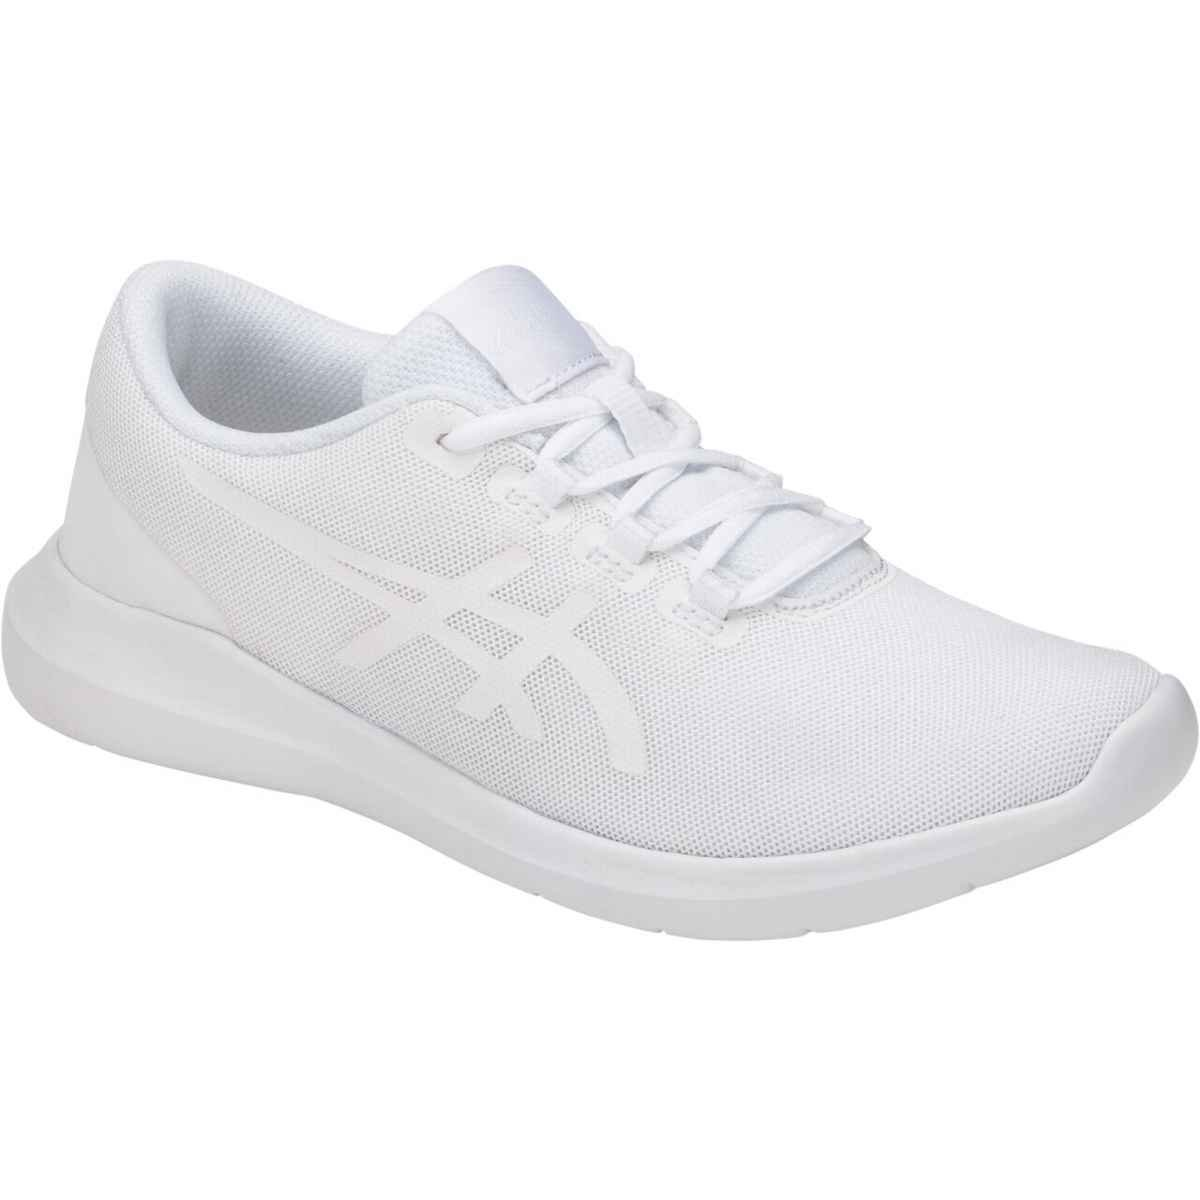 ASICS Metrolyte II Shoe Women's Walking B072BS3PNZ 9.5 M US|White/White/White